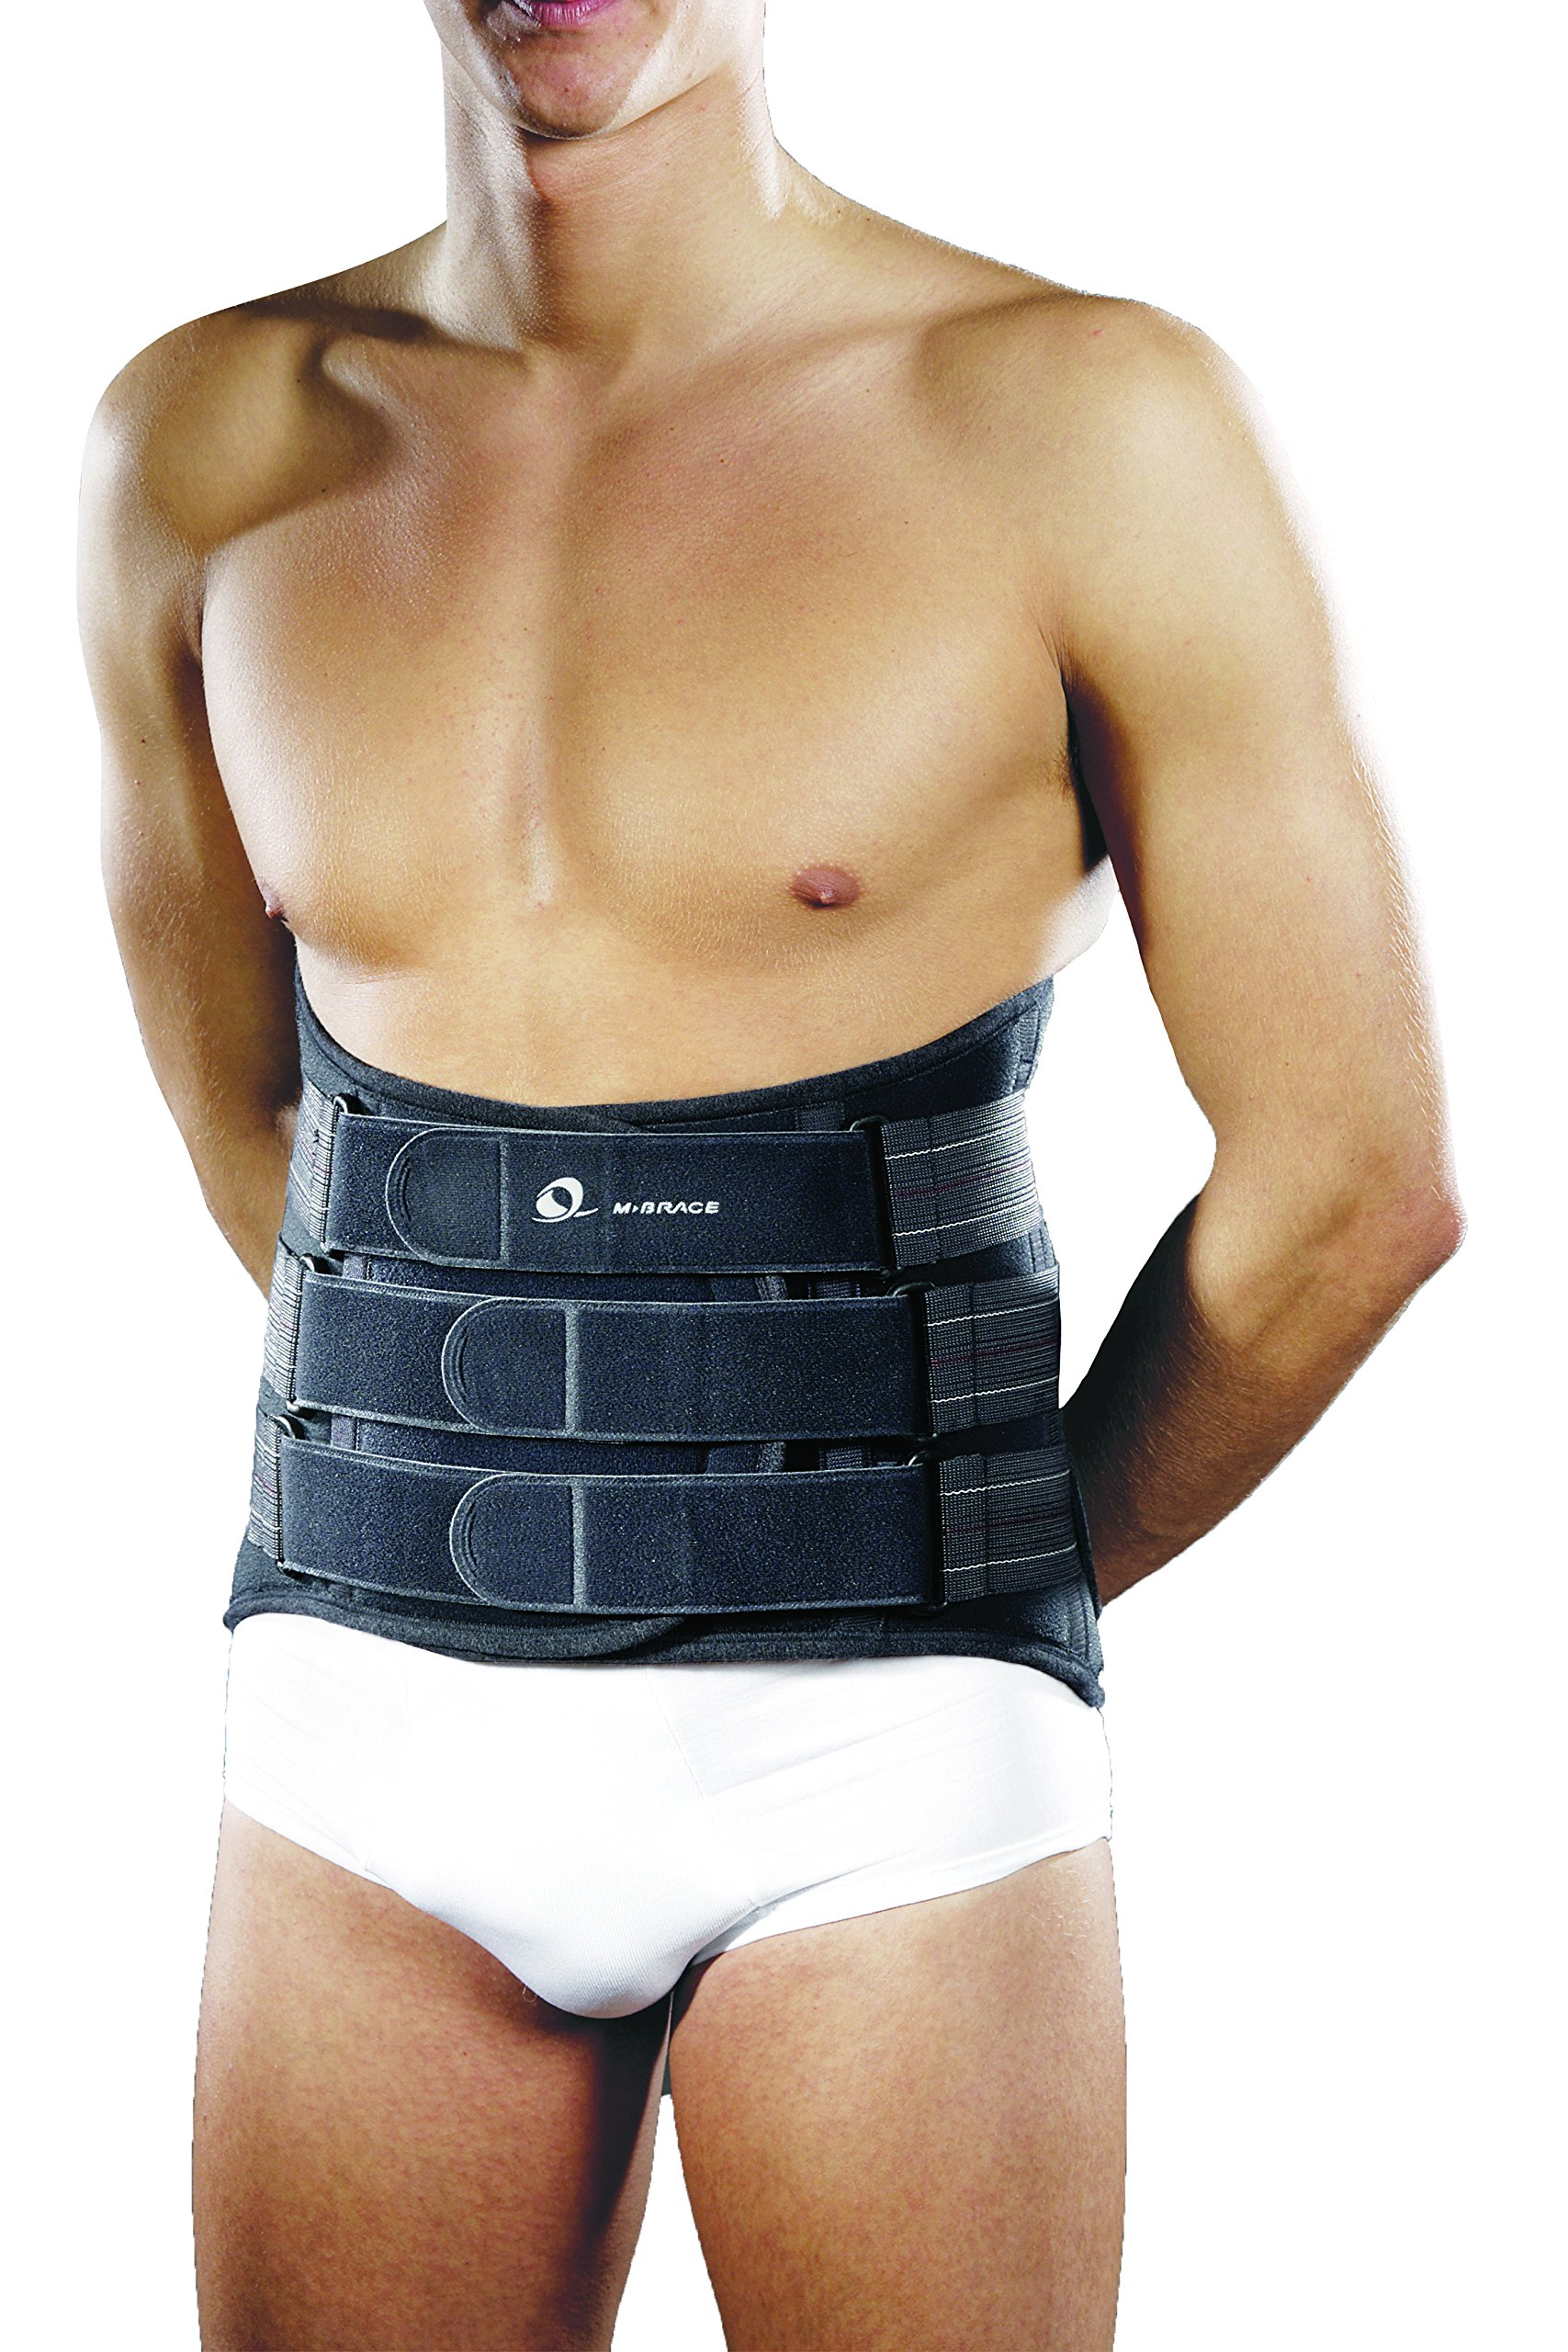 M-Brace AIR M-Spine Lumbar-Sacral Brace Size, Grey, 3X-Large by M-Brace AIR